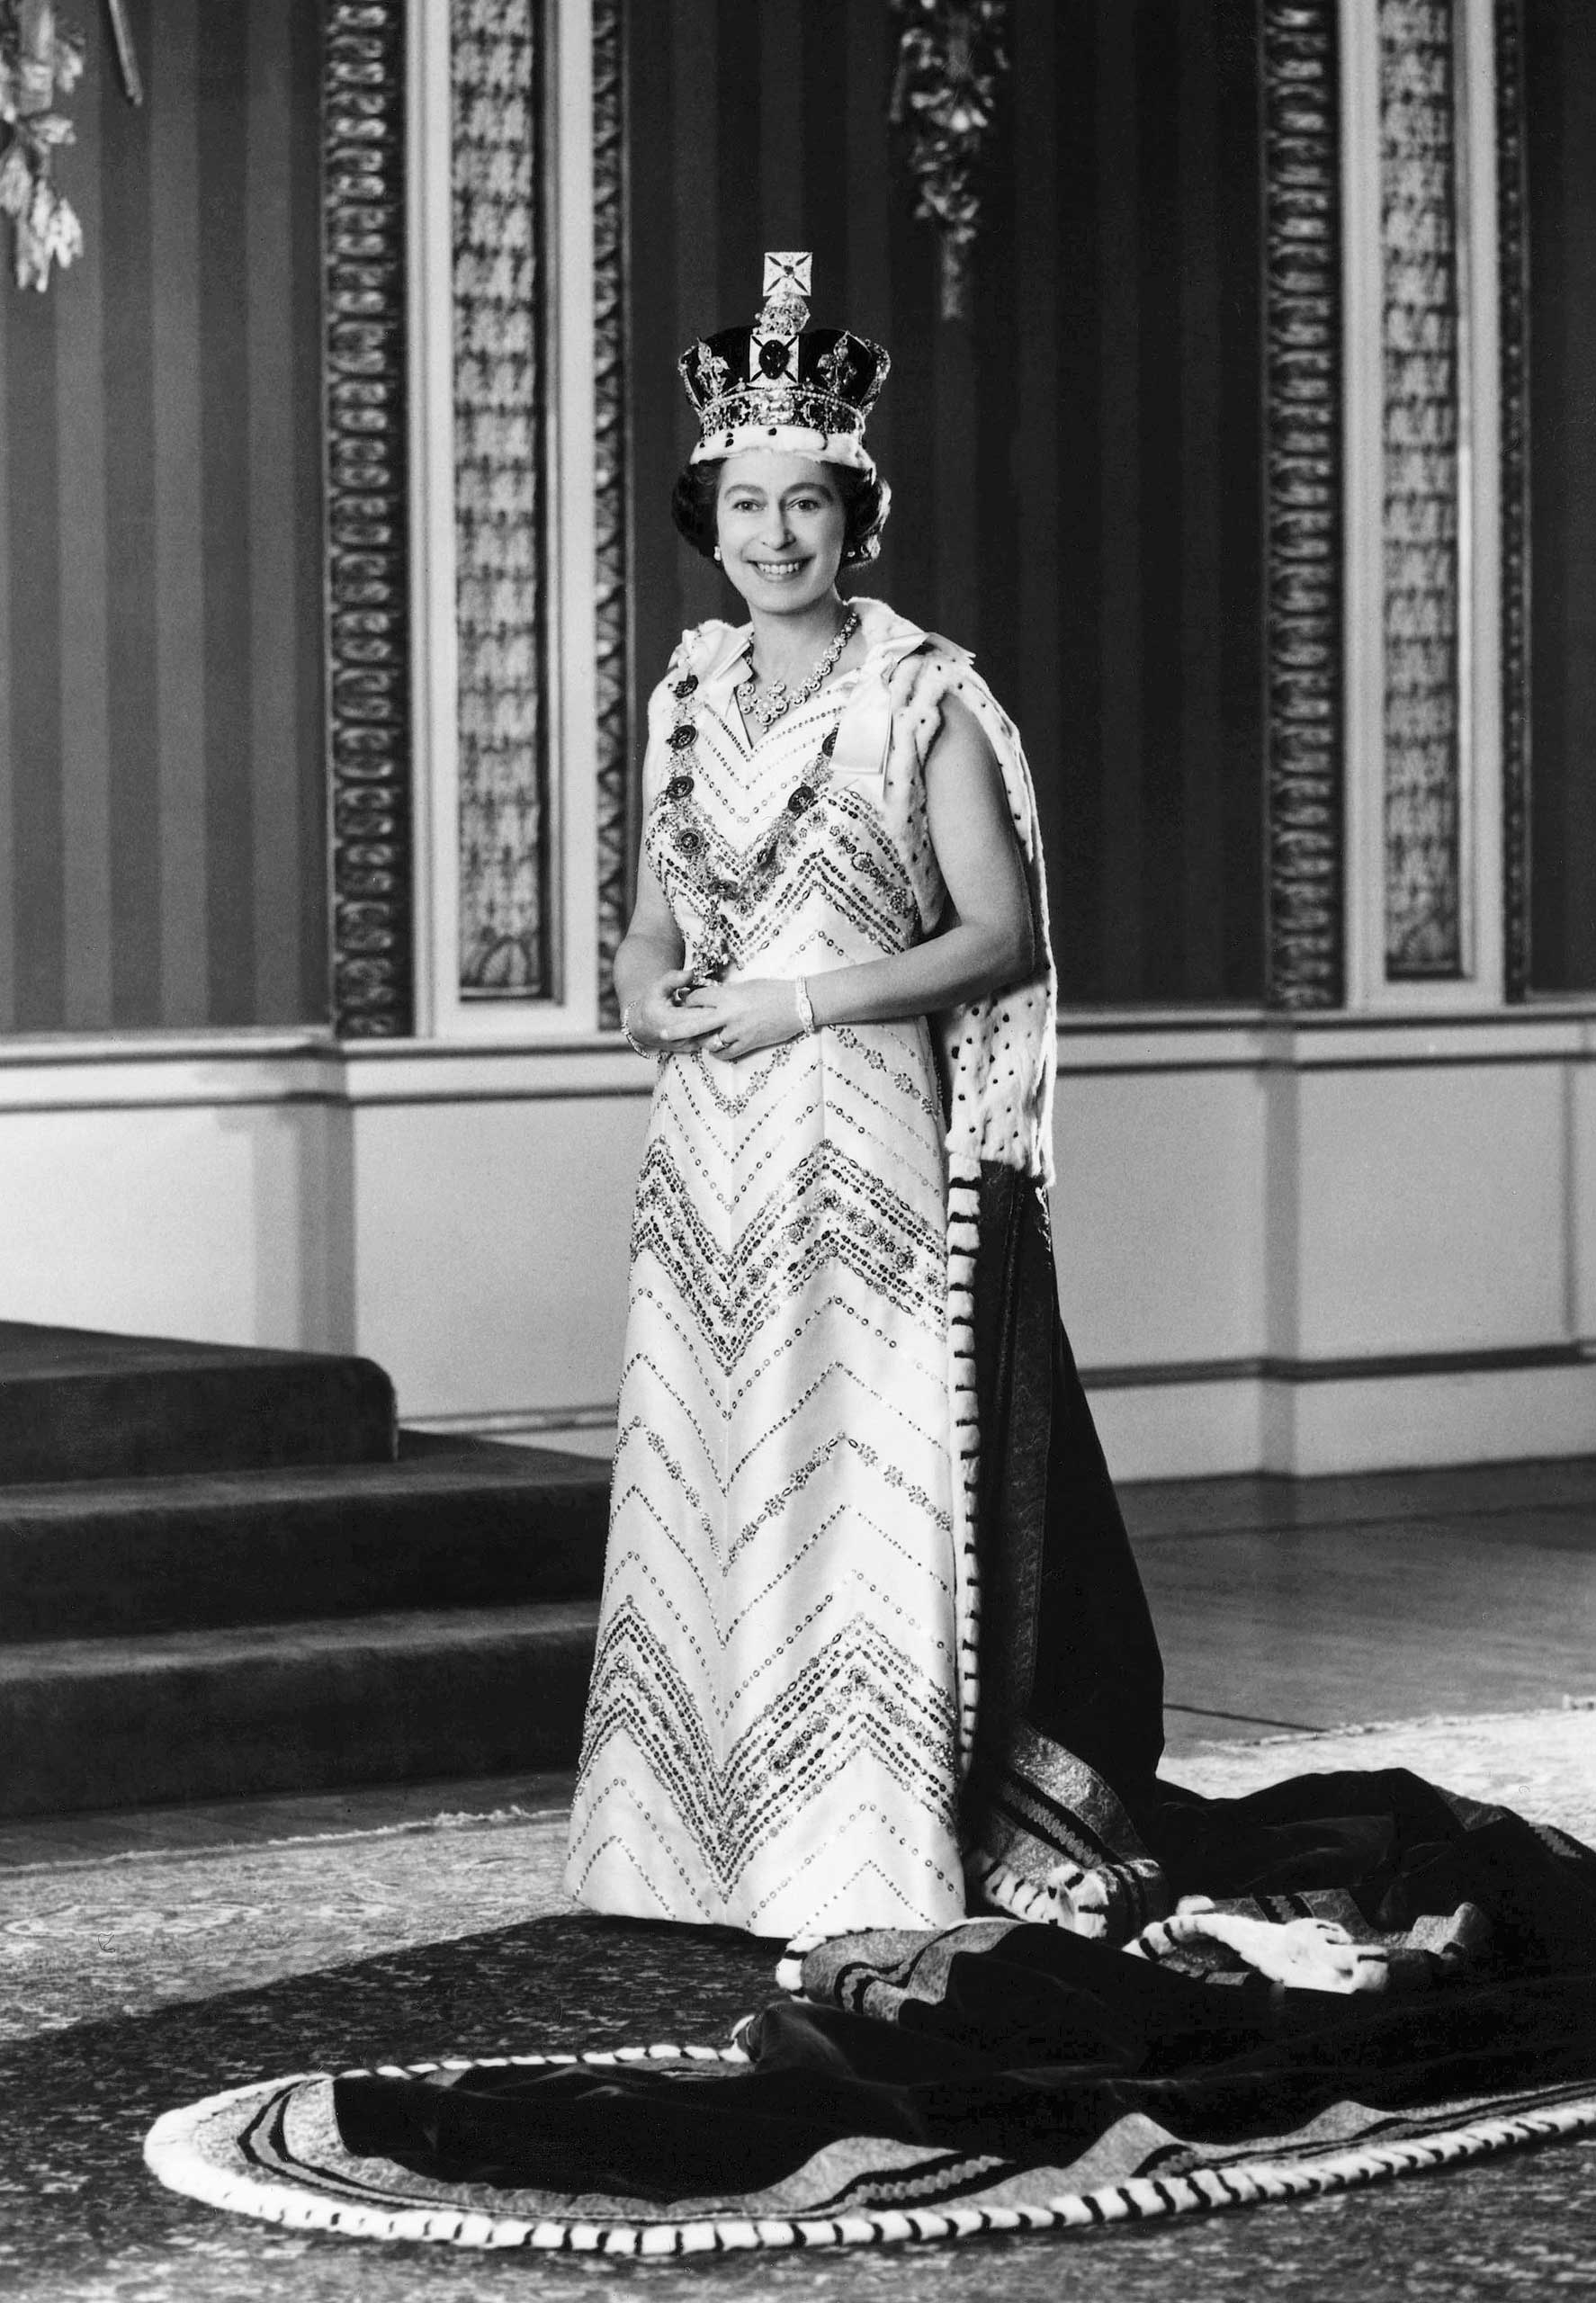 Queen Elizabeth II, dressed in royal regalia, posed for this special Jubilee picture in the Throne Room of Buckingham Palace, after she had delivered the traditional Queen's speech at the 1976 official State Opening of Parliament.